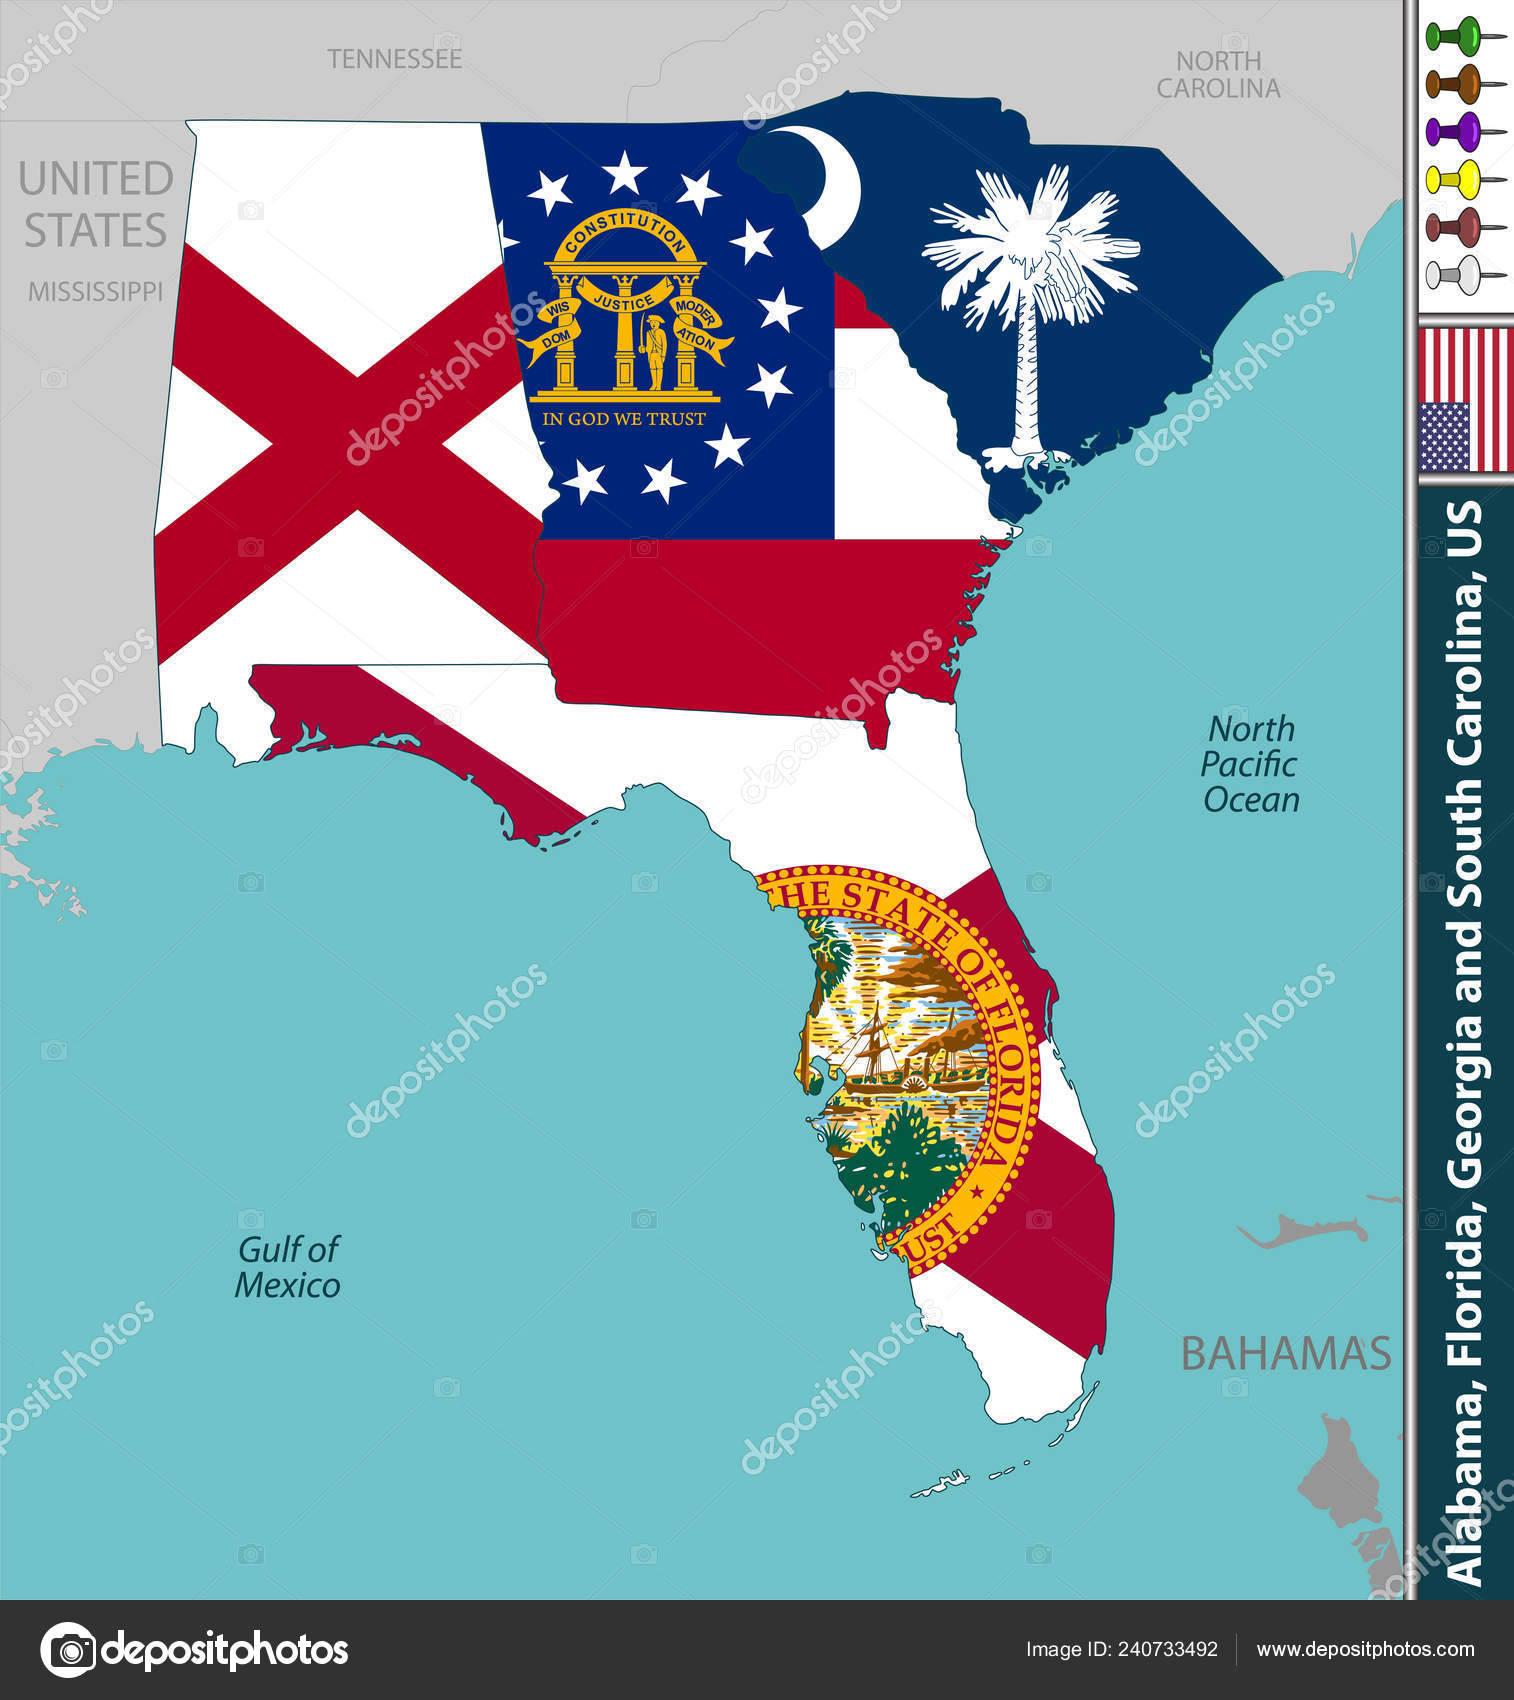 Map Of Georgia Florida And Alabama.Vector States Alabama Florida Georgia South Carolina United States